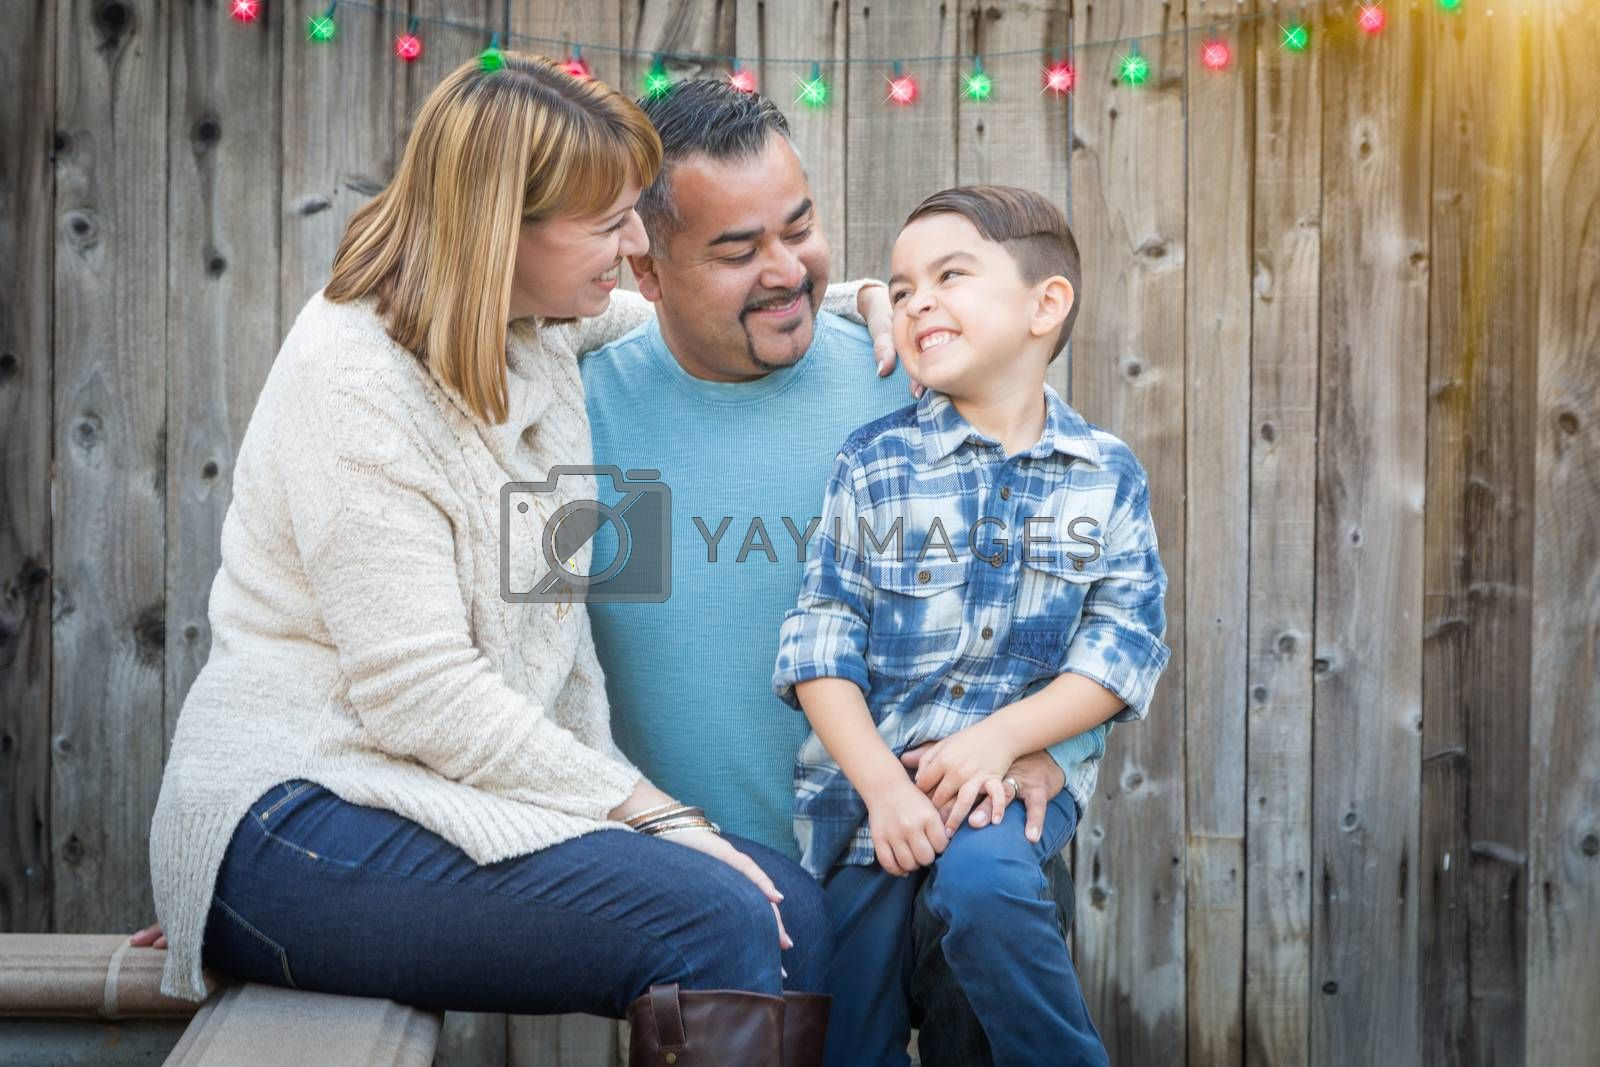 Happy Young Mixed Race Family Portrait Outside with Christmas Lights and Snow Effect.